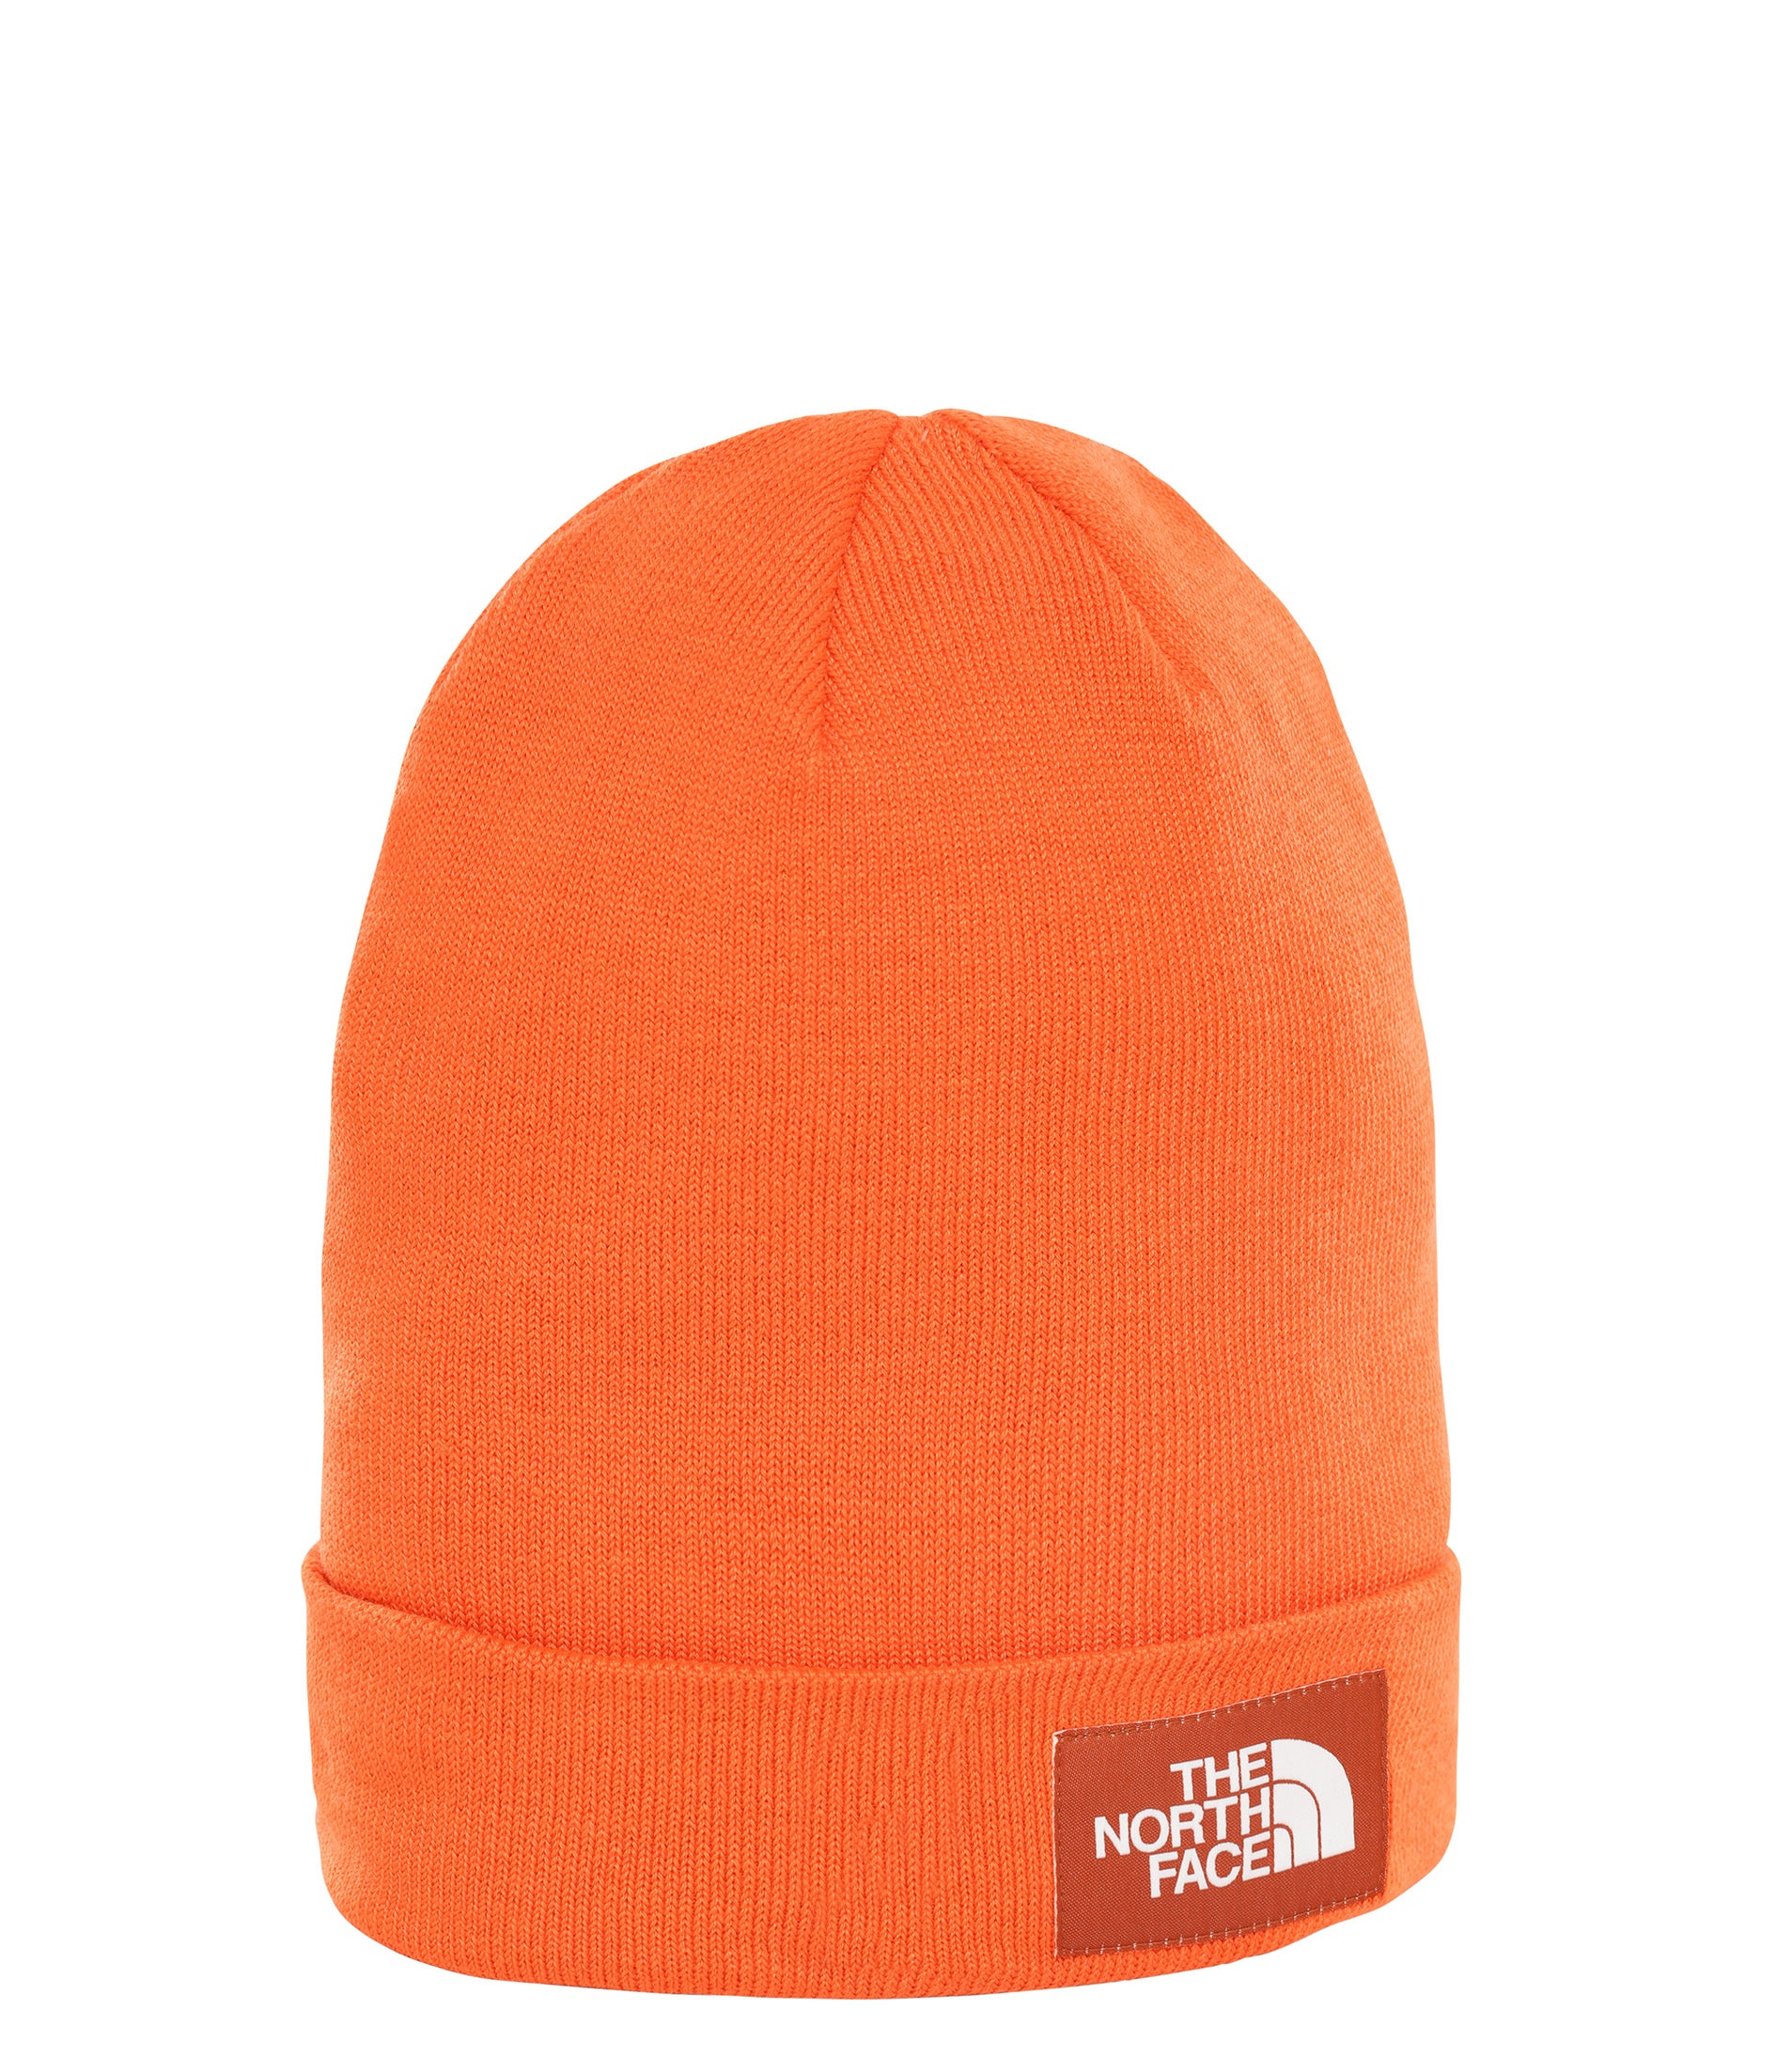 The North Face Dock Worker Recycled Beanie thumbnail